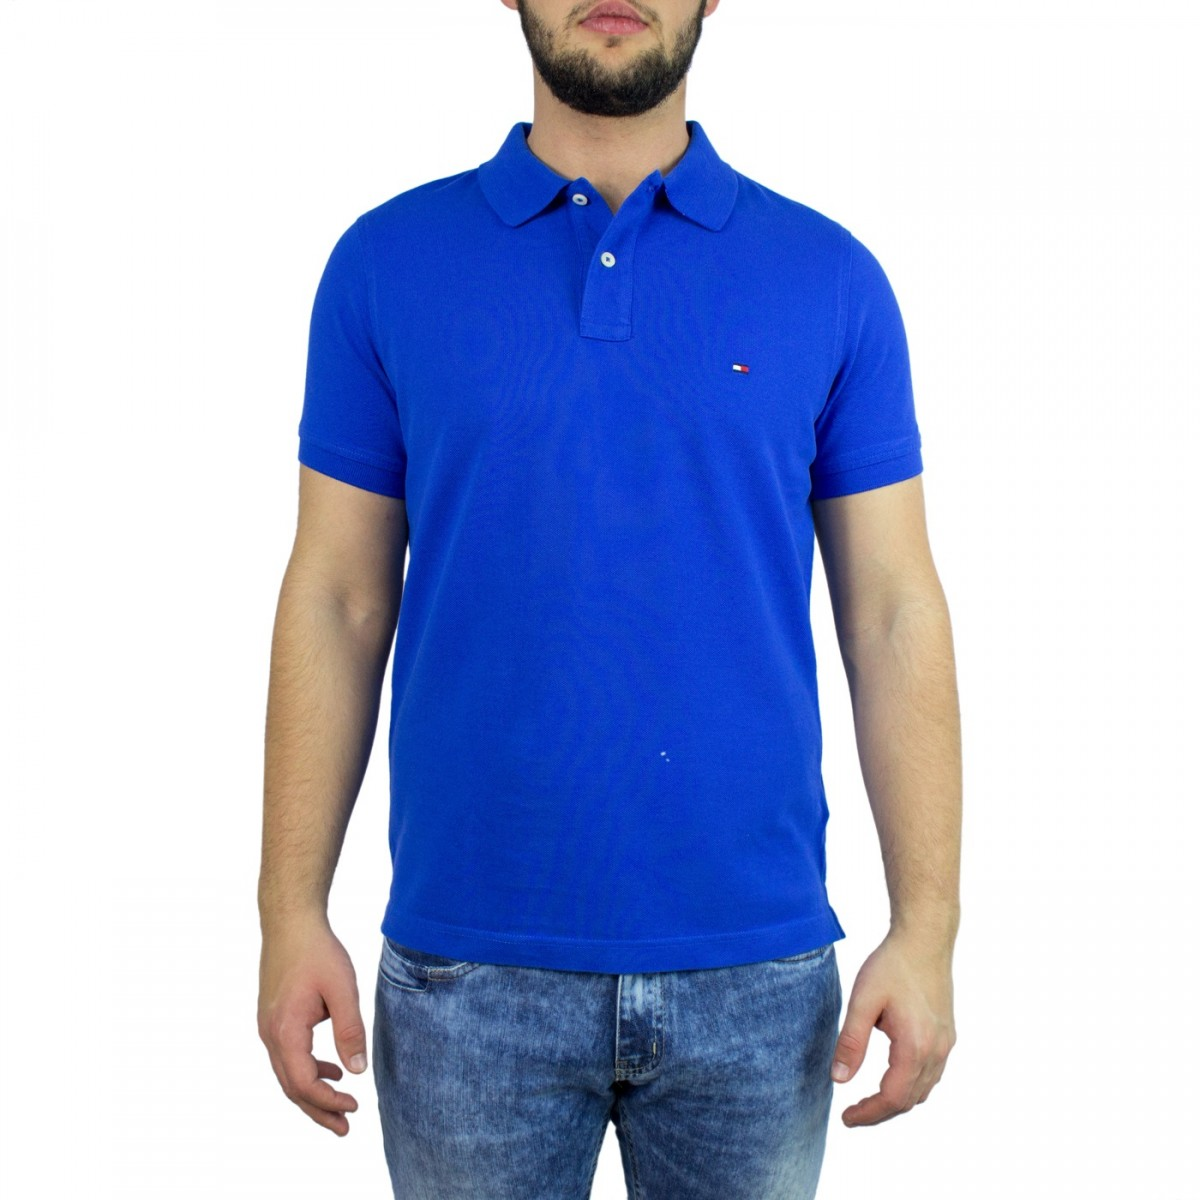 Bizz Store - Camisa Polo Masculina Tommy Hilfiger Slim Fit 06fe391f520ba